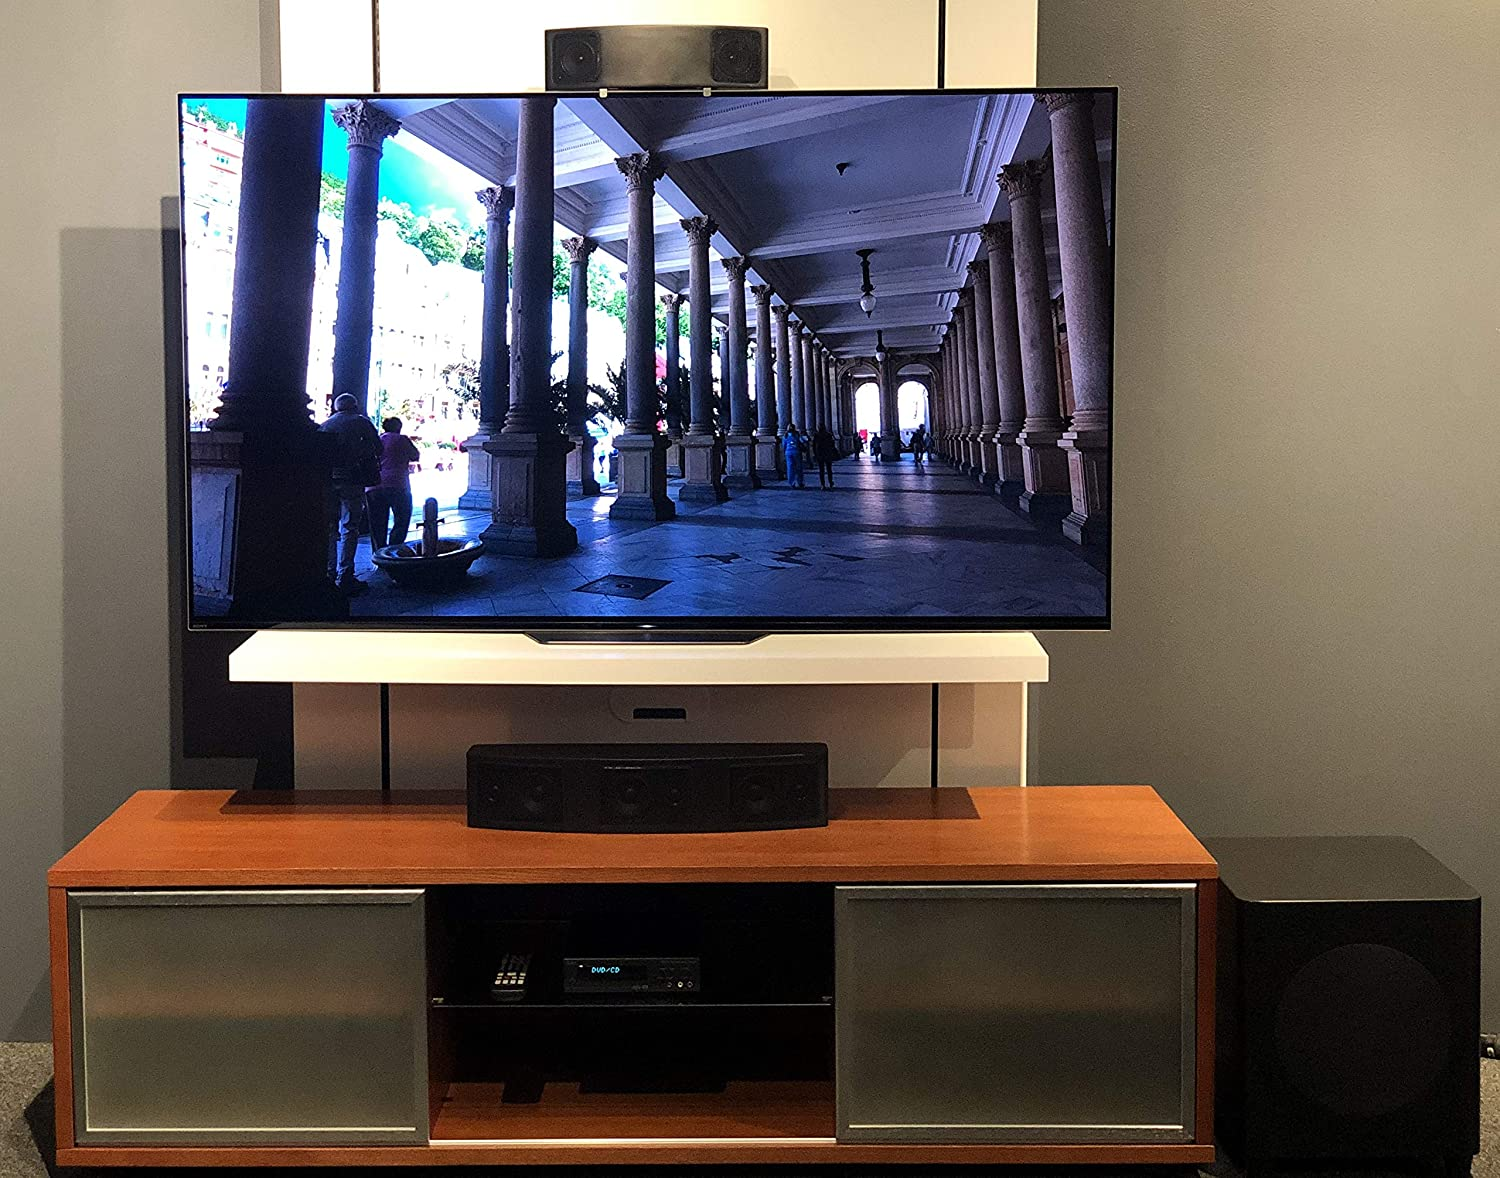 Niro HPS600 - 5.1 Home Theater Surround Sound System